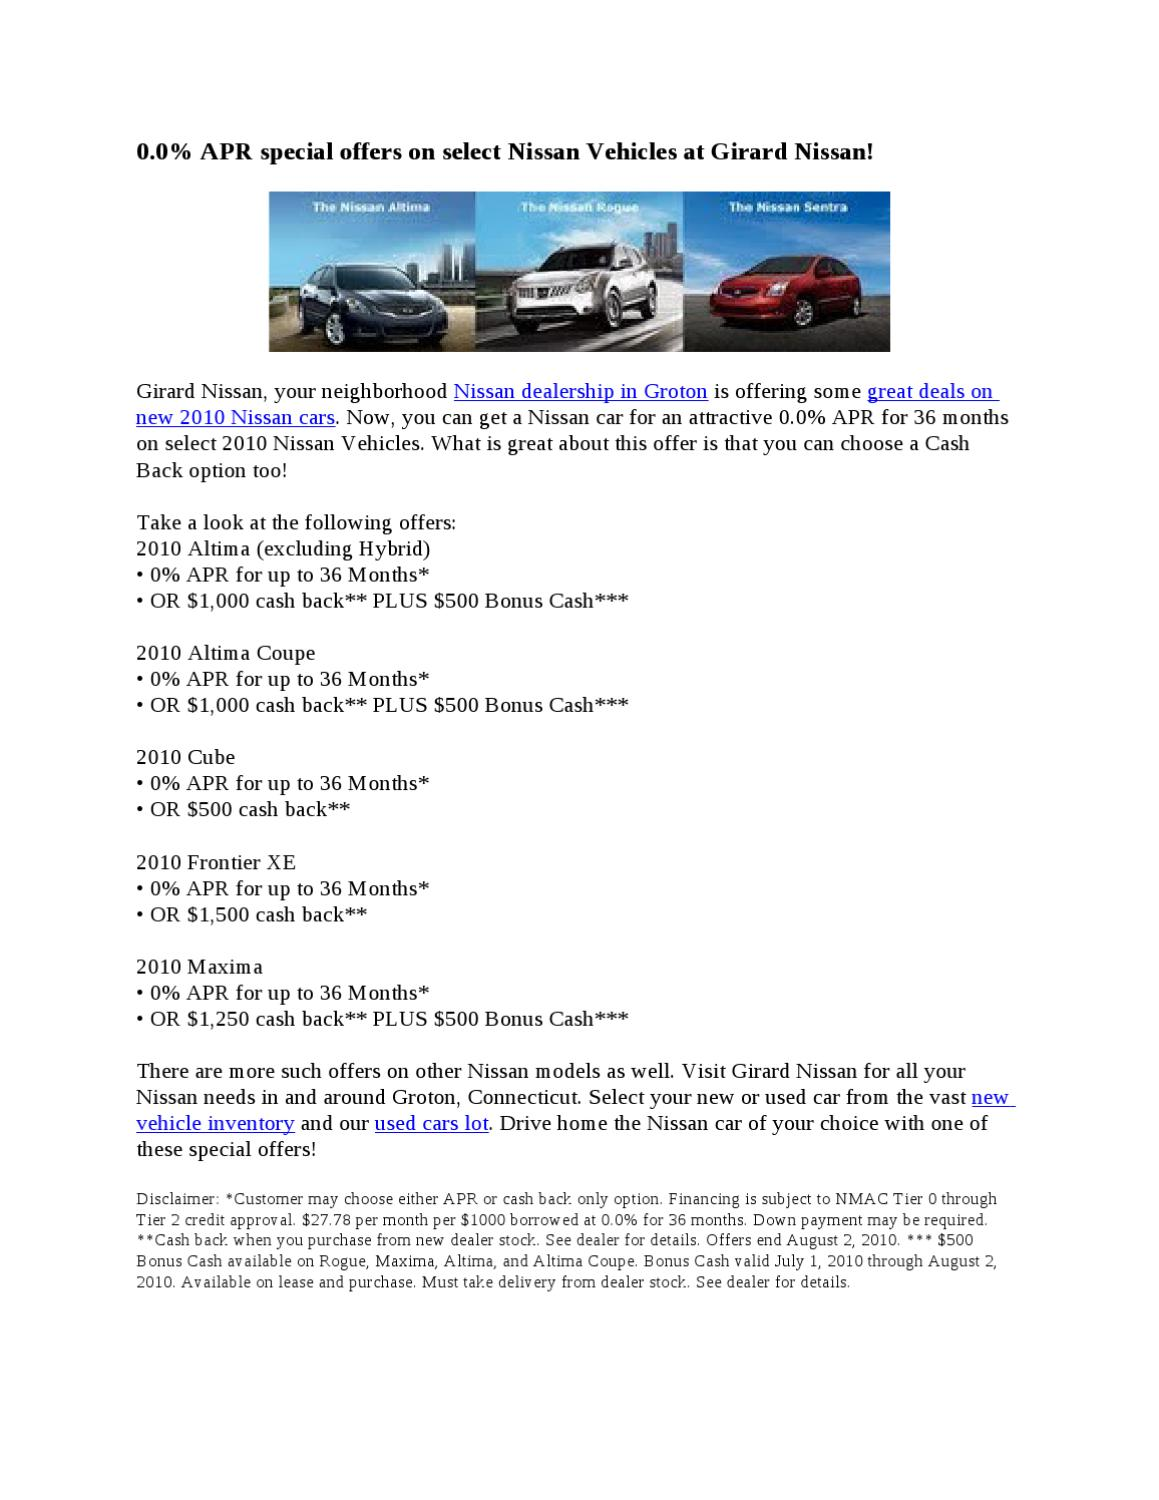 Car Loan And Auto Finance Groton Connecticut By Girard Nissan   Issuu